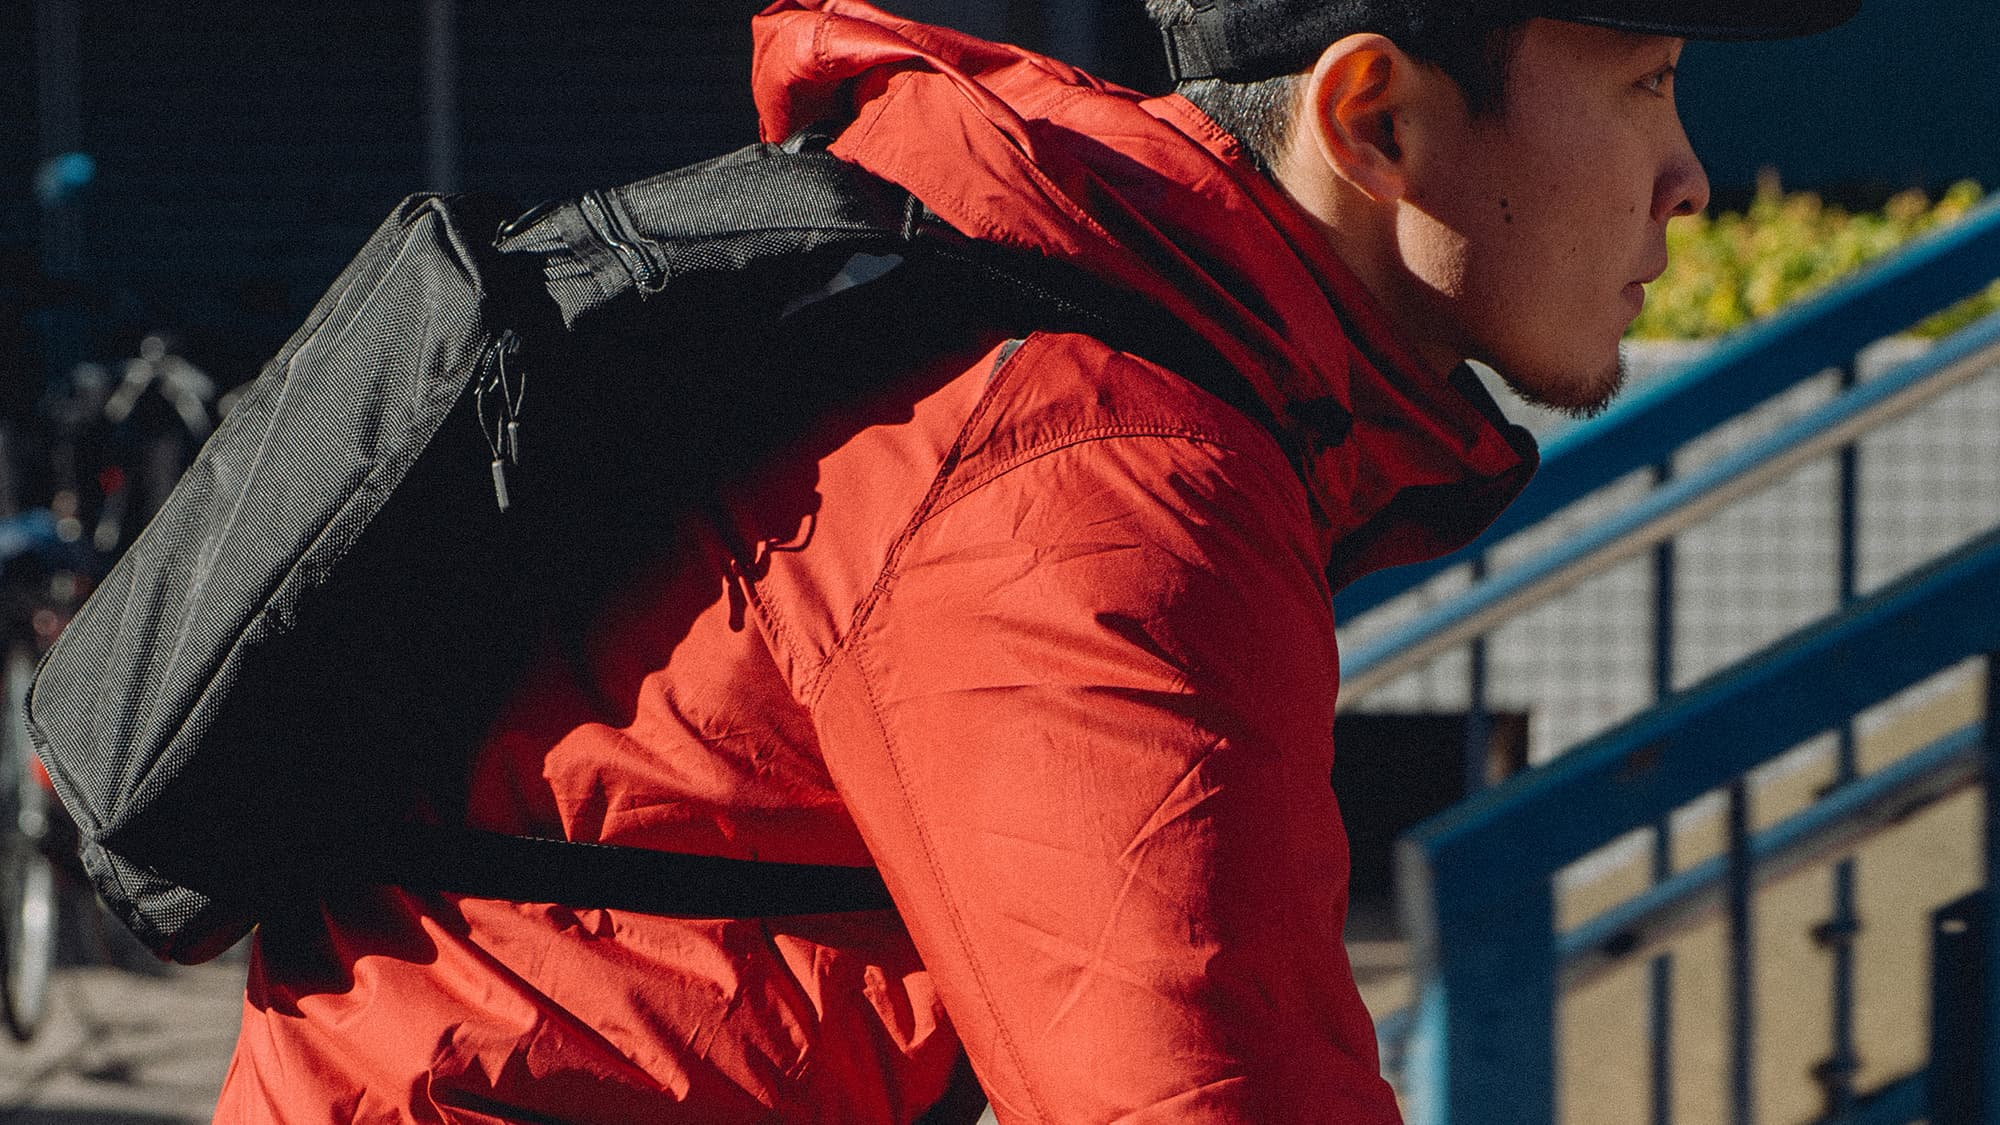 MXD Fathom Backpack, compact yet roomy